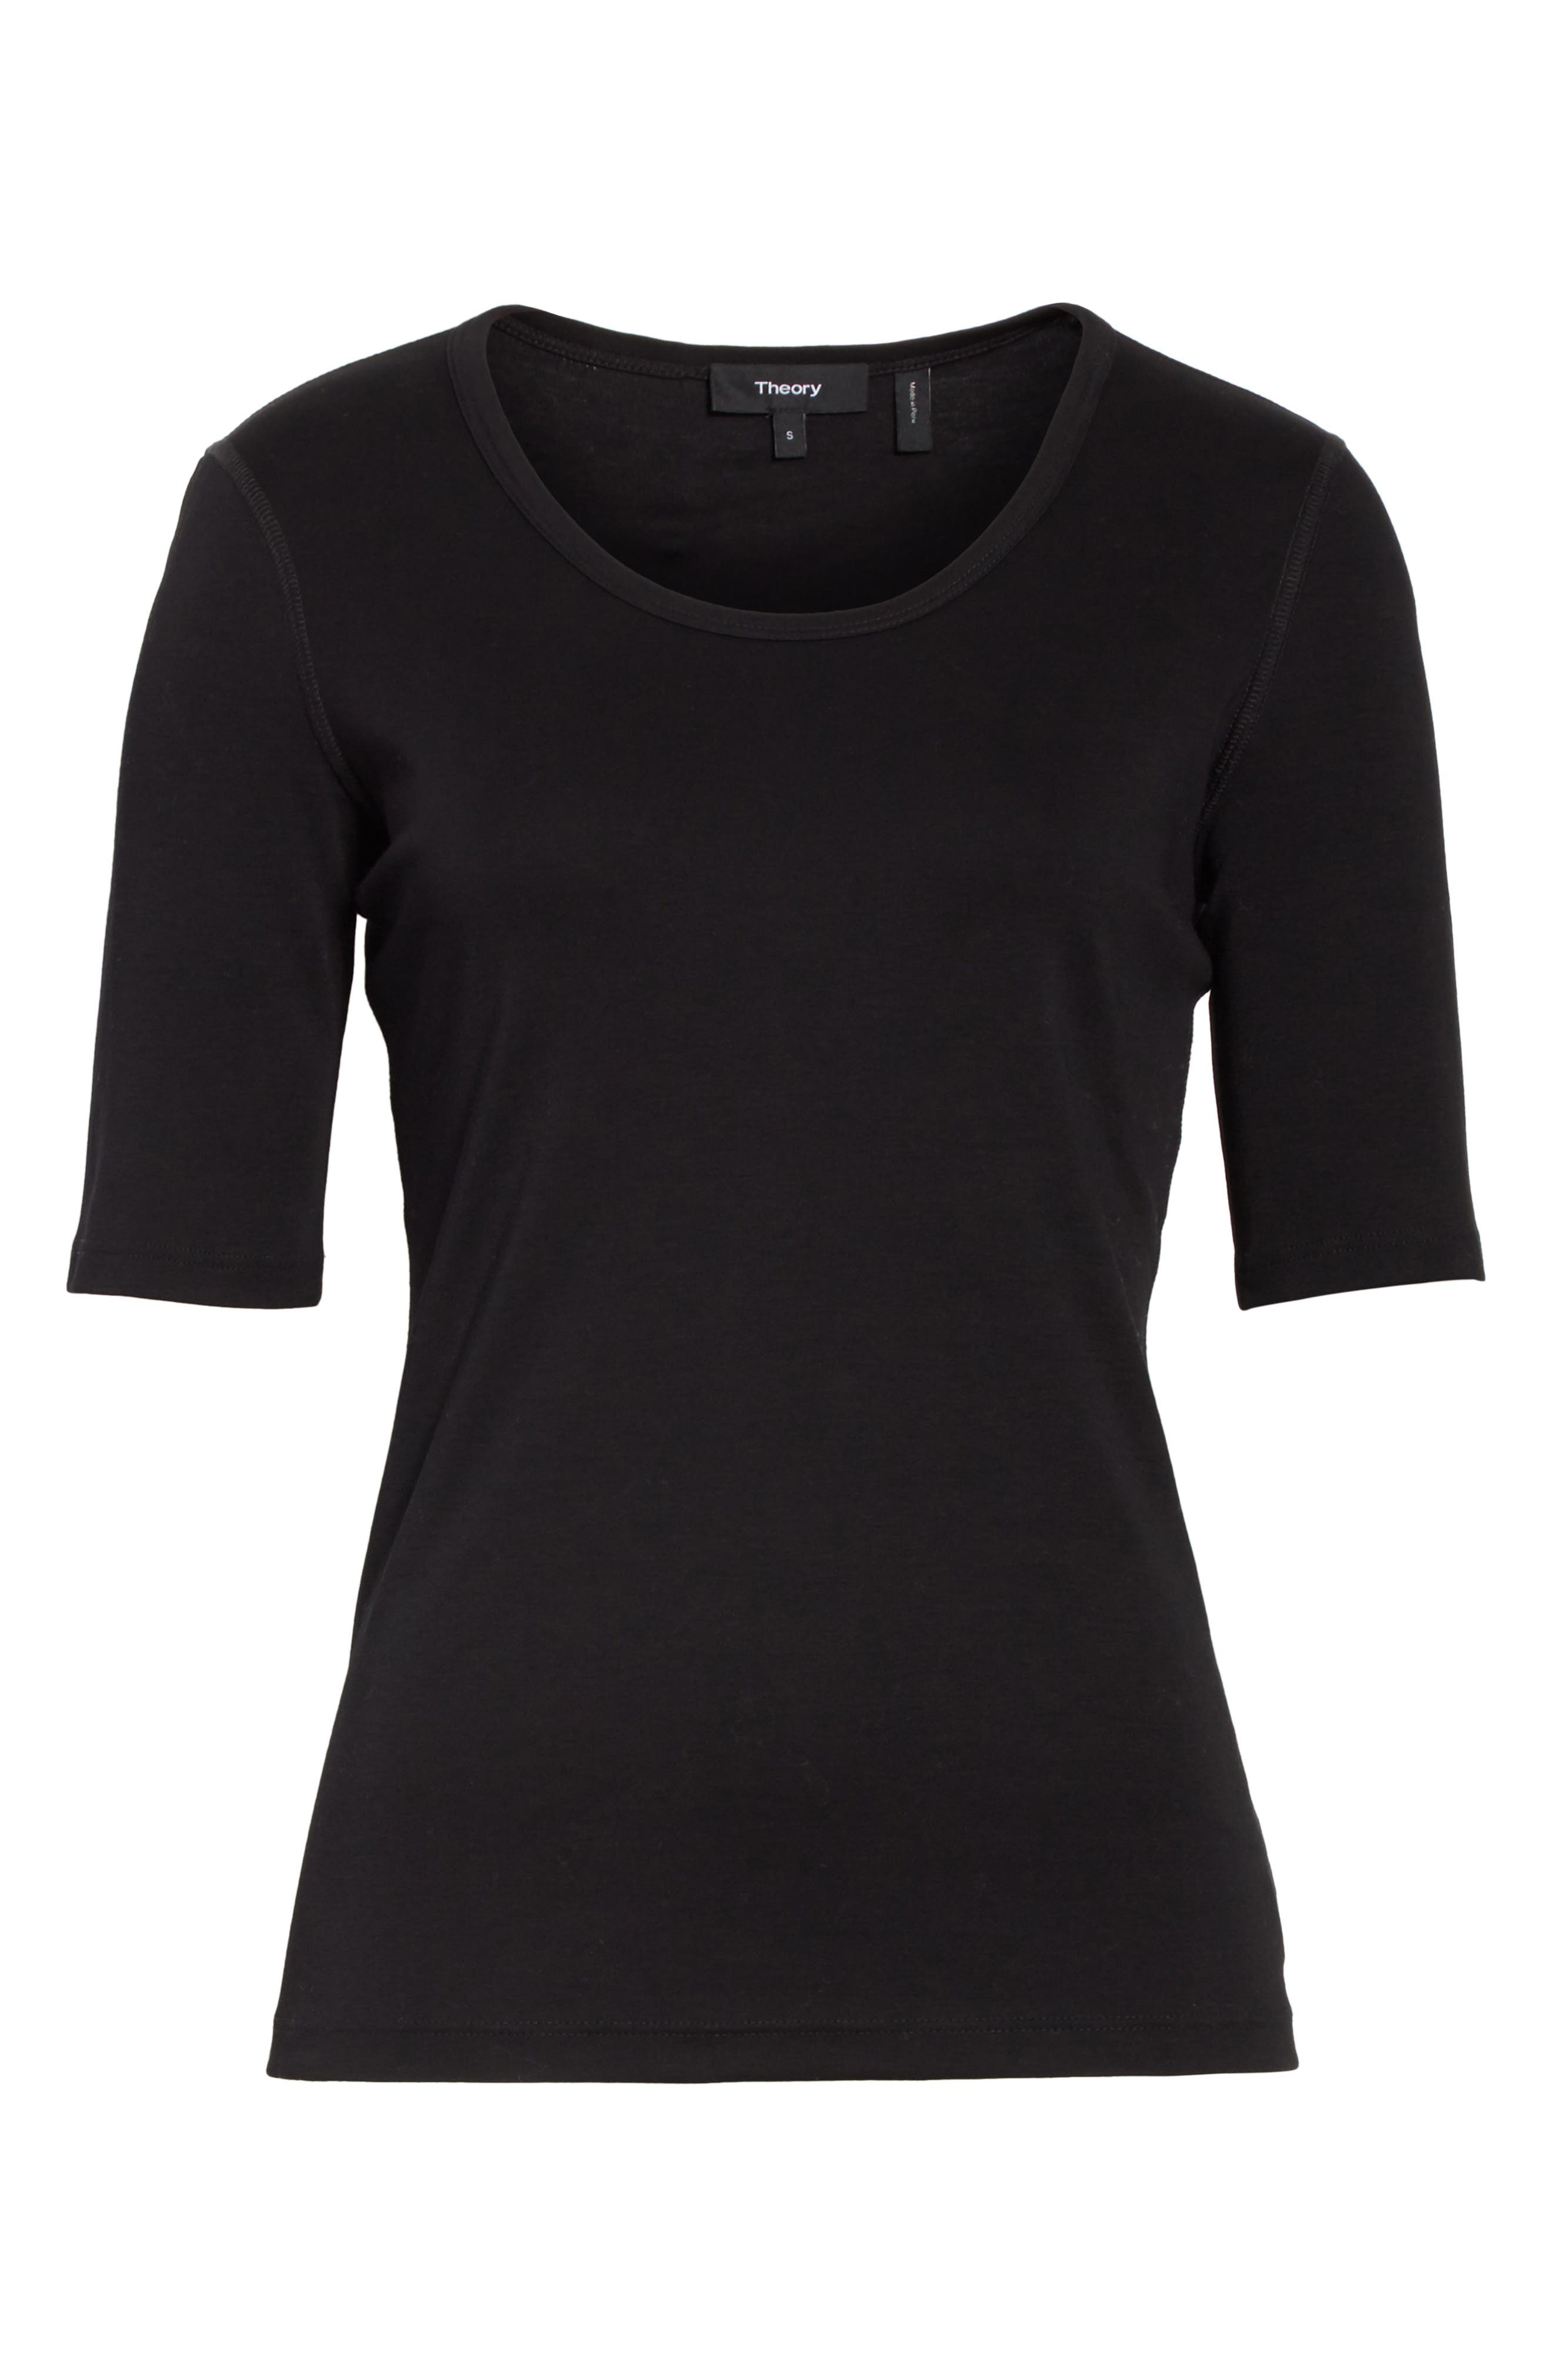 Pima Cotton Top,                             Alternate thumbnail 6, color,                             BLACK